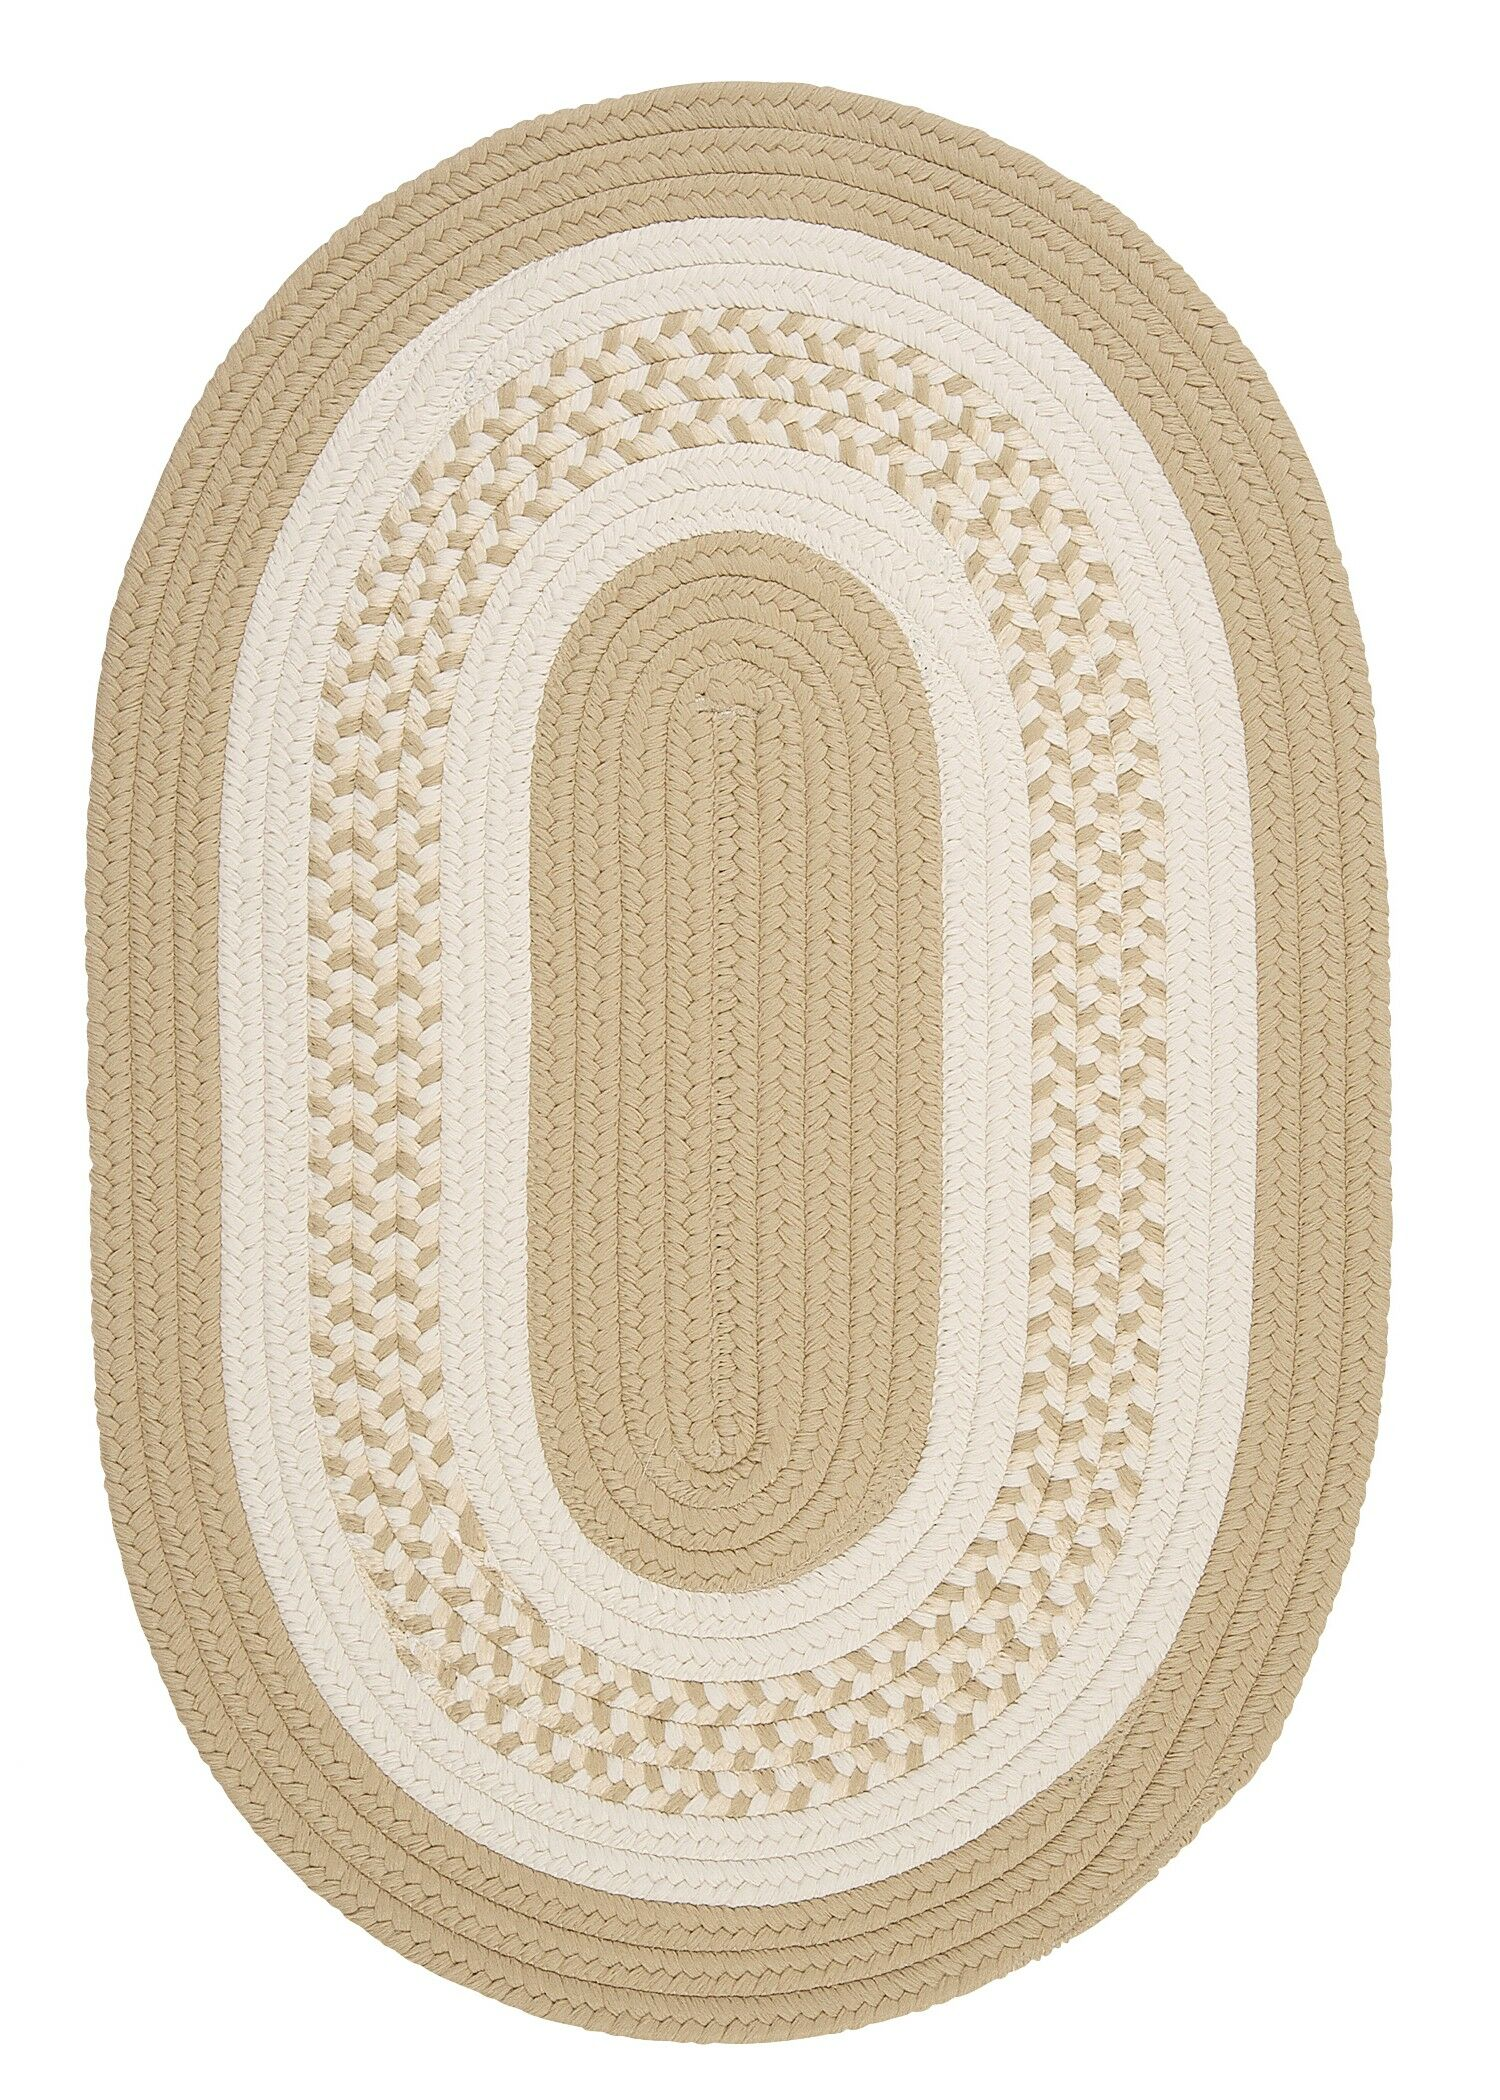 Rockport Neutral Linen Indoor/Outdoor Rug Rug Size: Round 12'